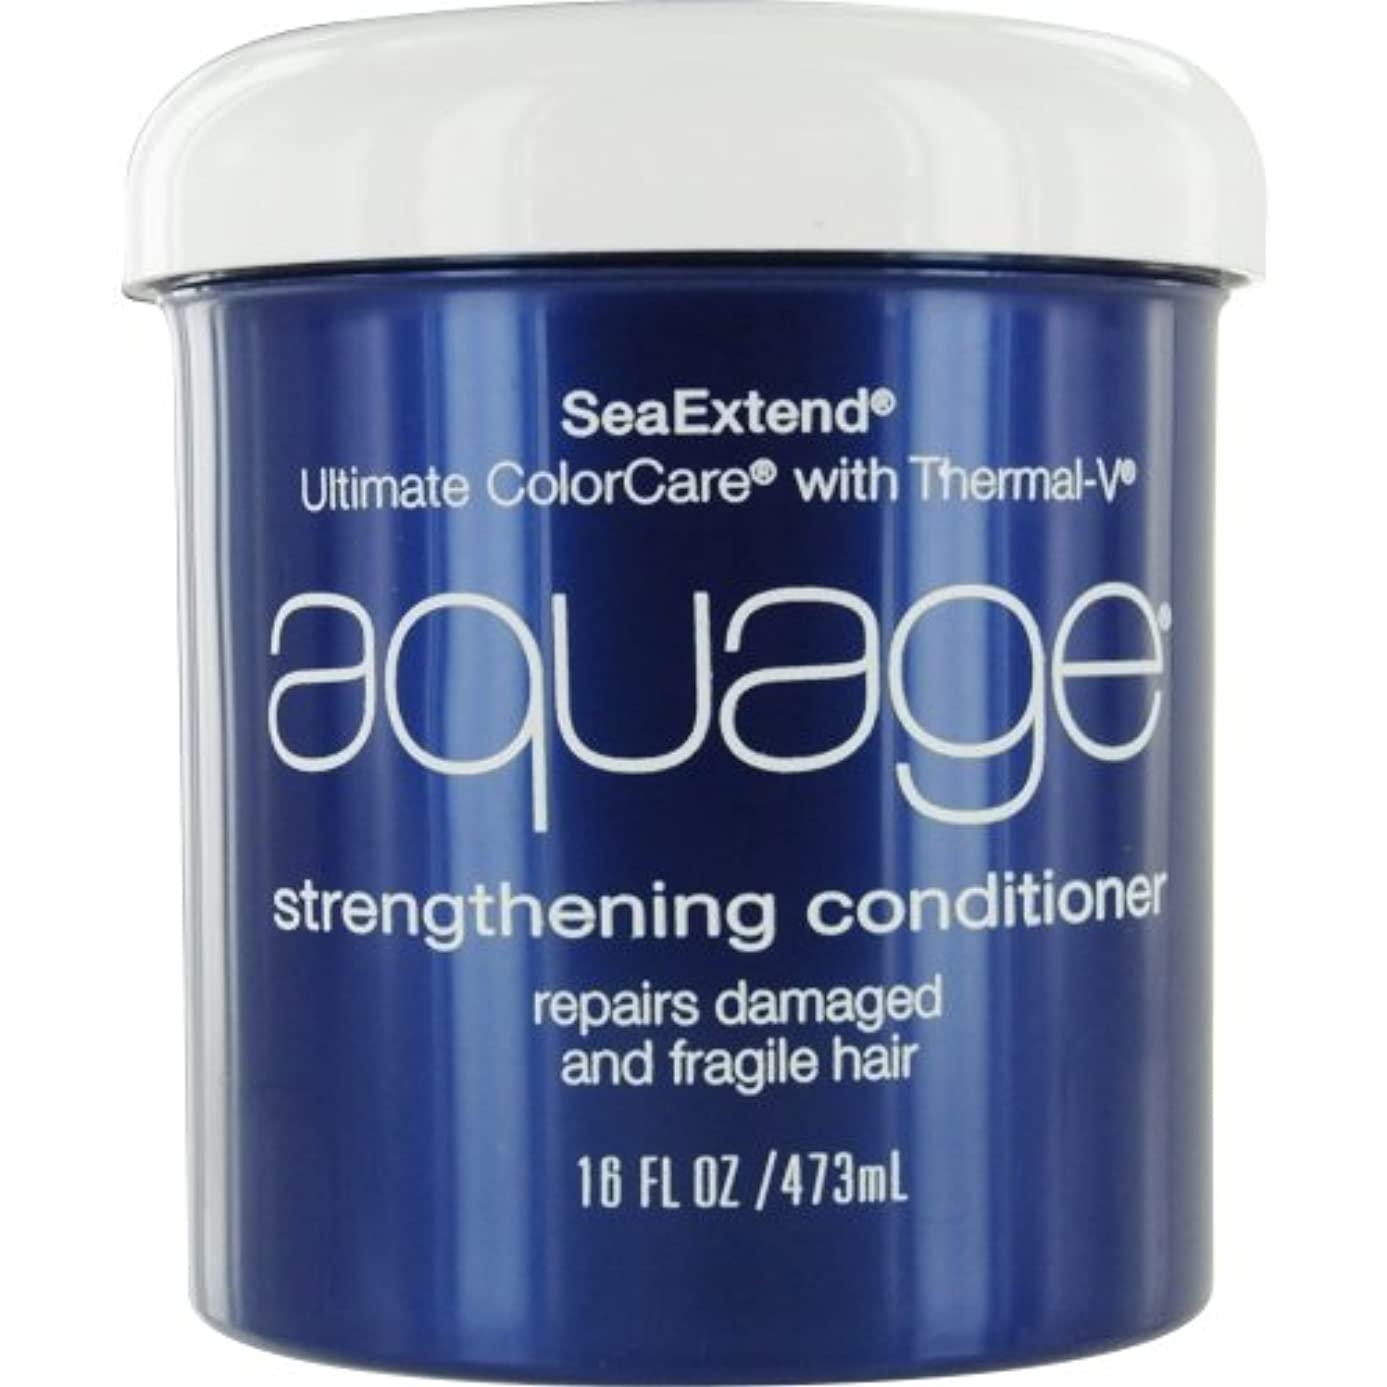 投資最適飼い慣らすSeaextend Ultimate Colorcare with Thermal-V Strengthening Conditioner